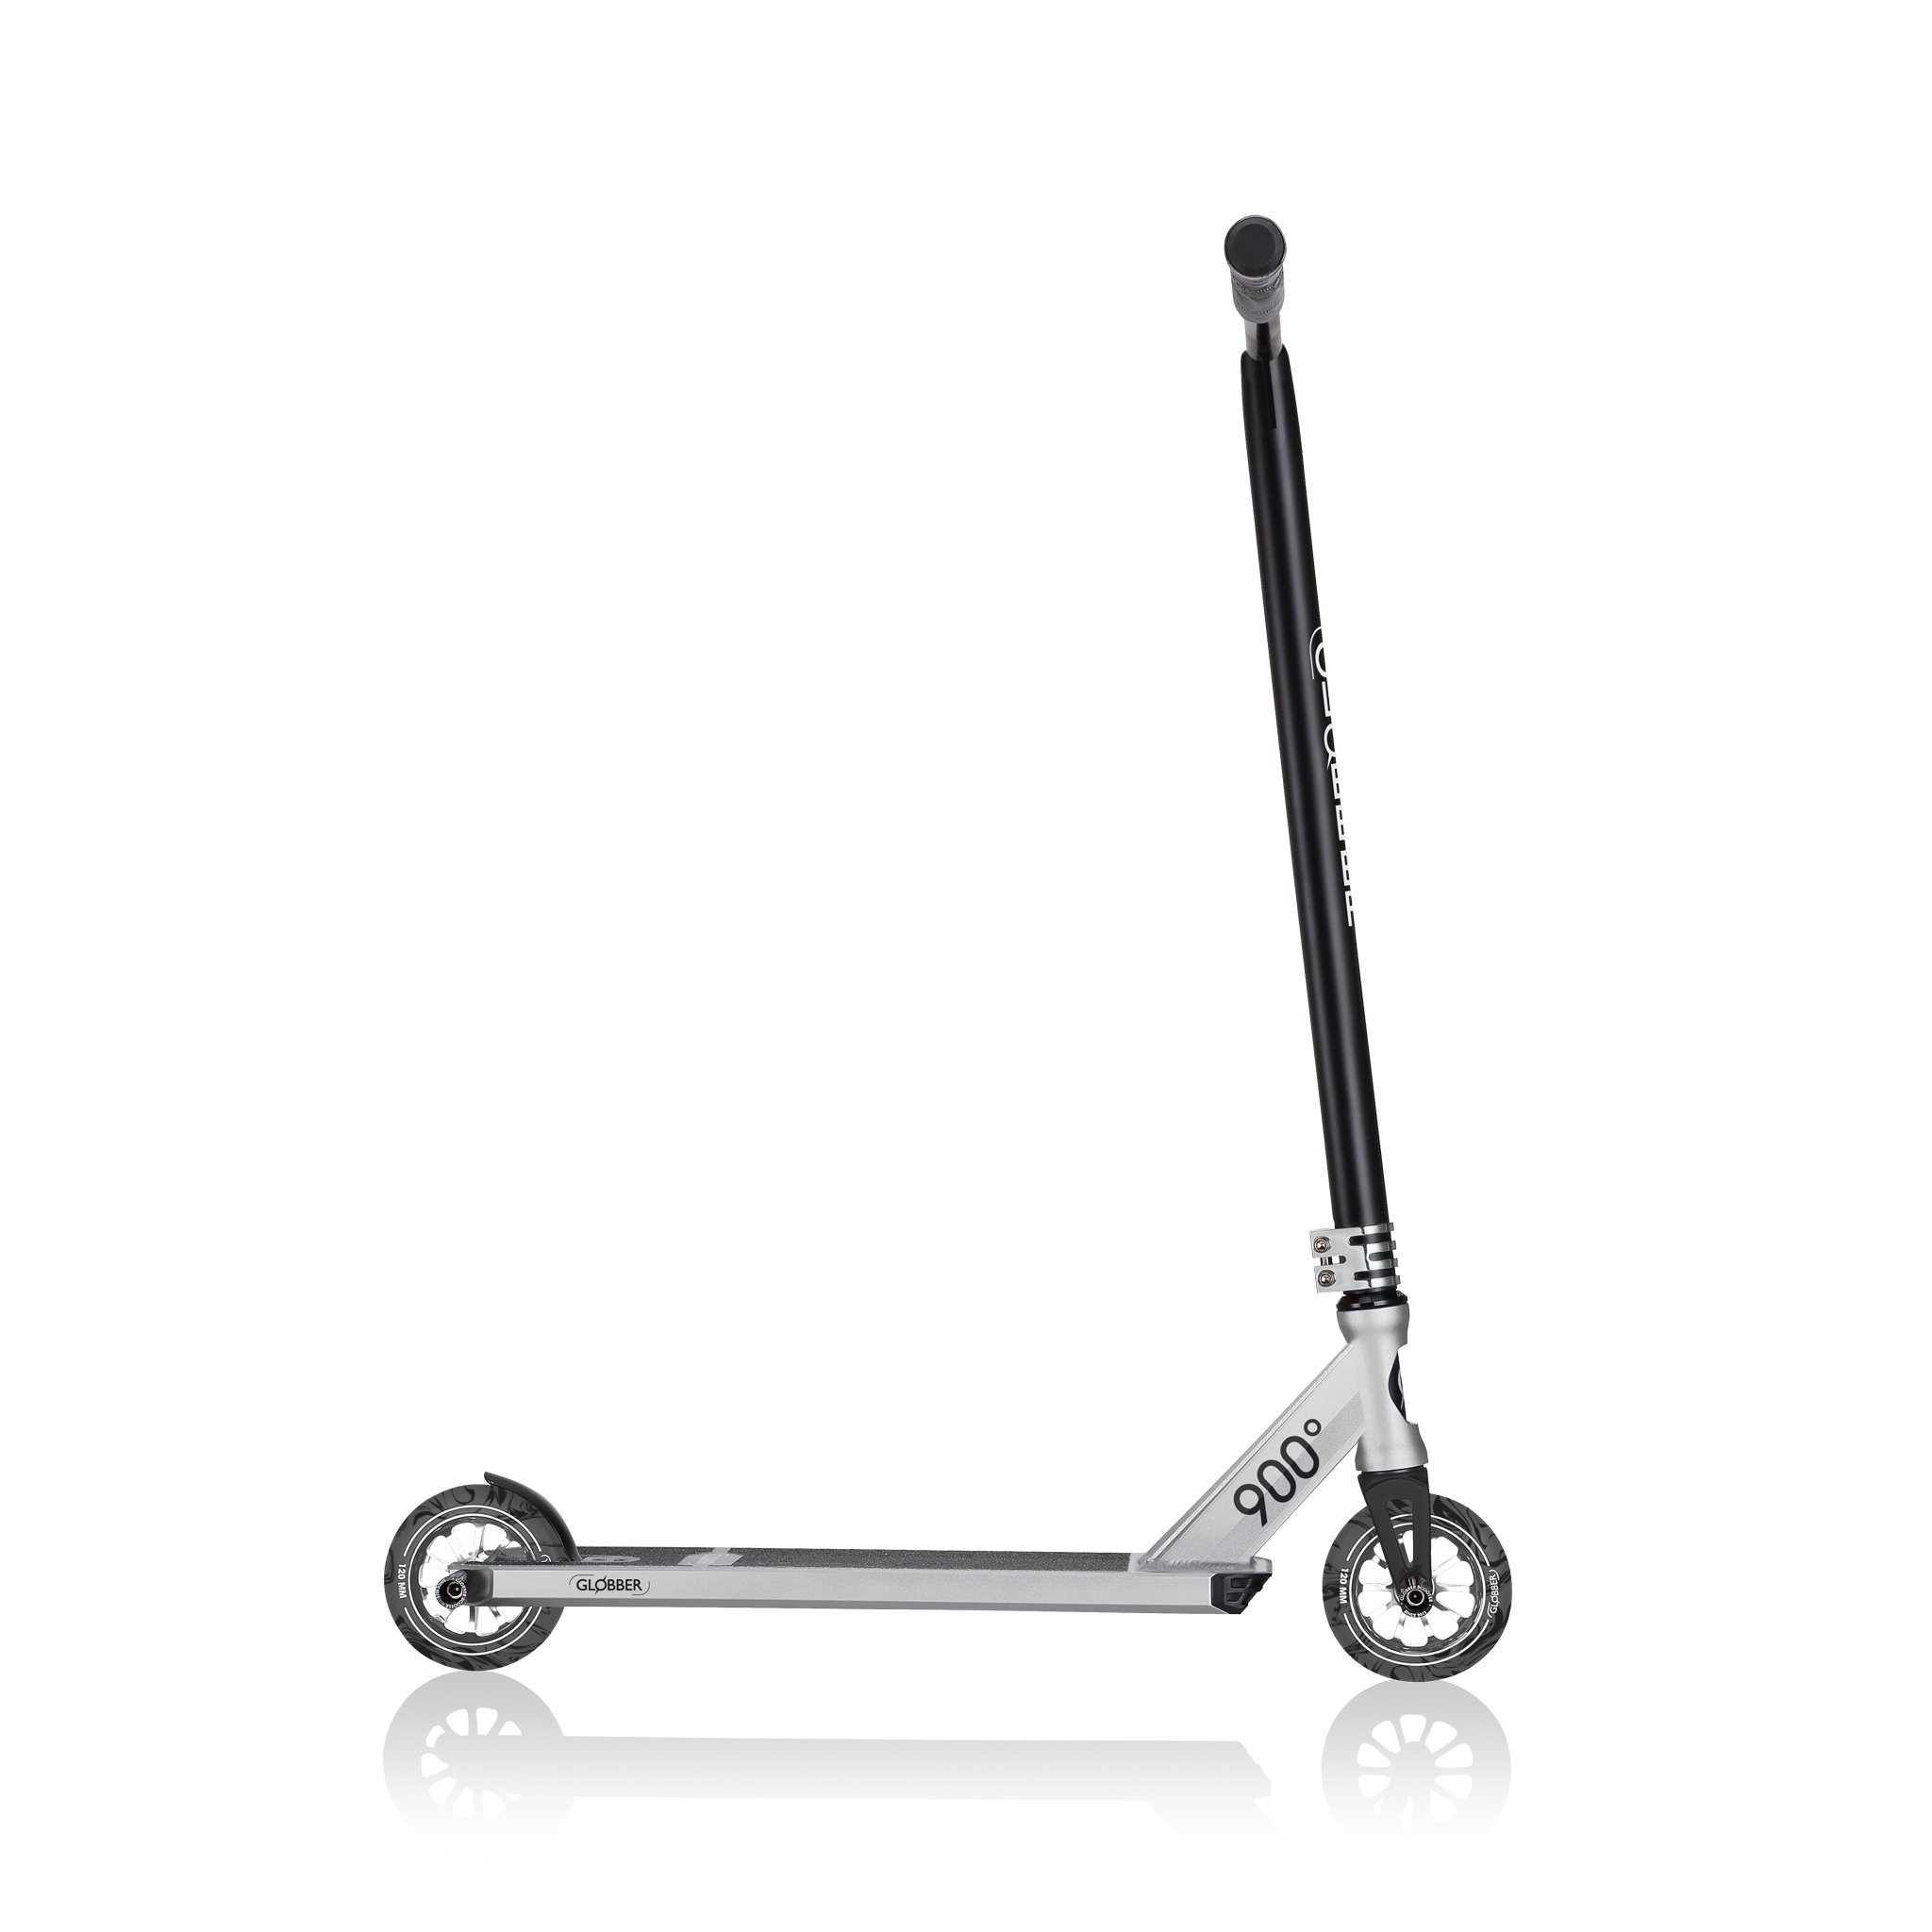 best-stunt-scooter-wheels-with-durable-bearings-Globber-GS900 2